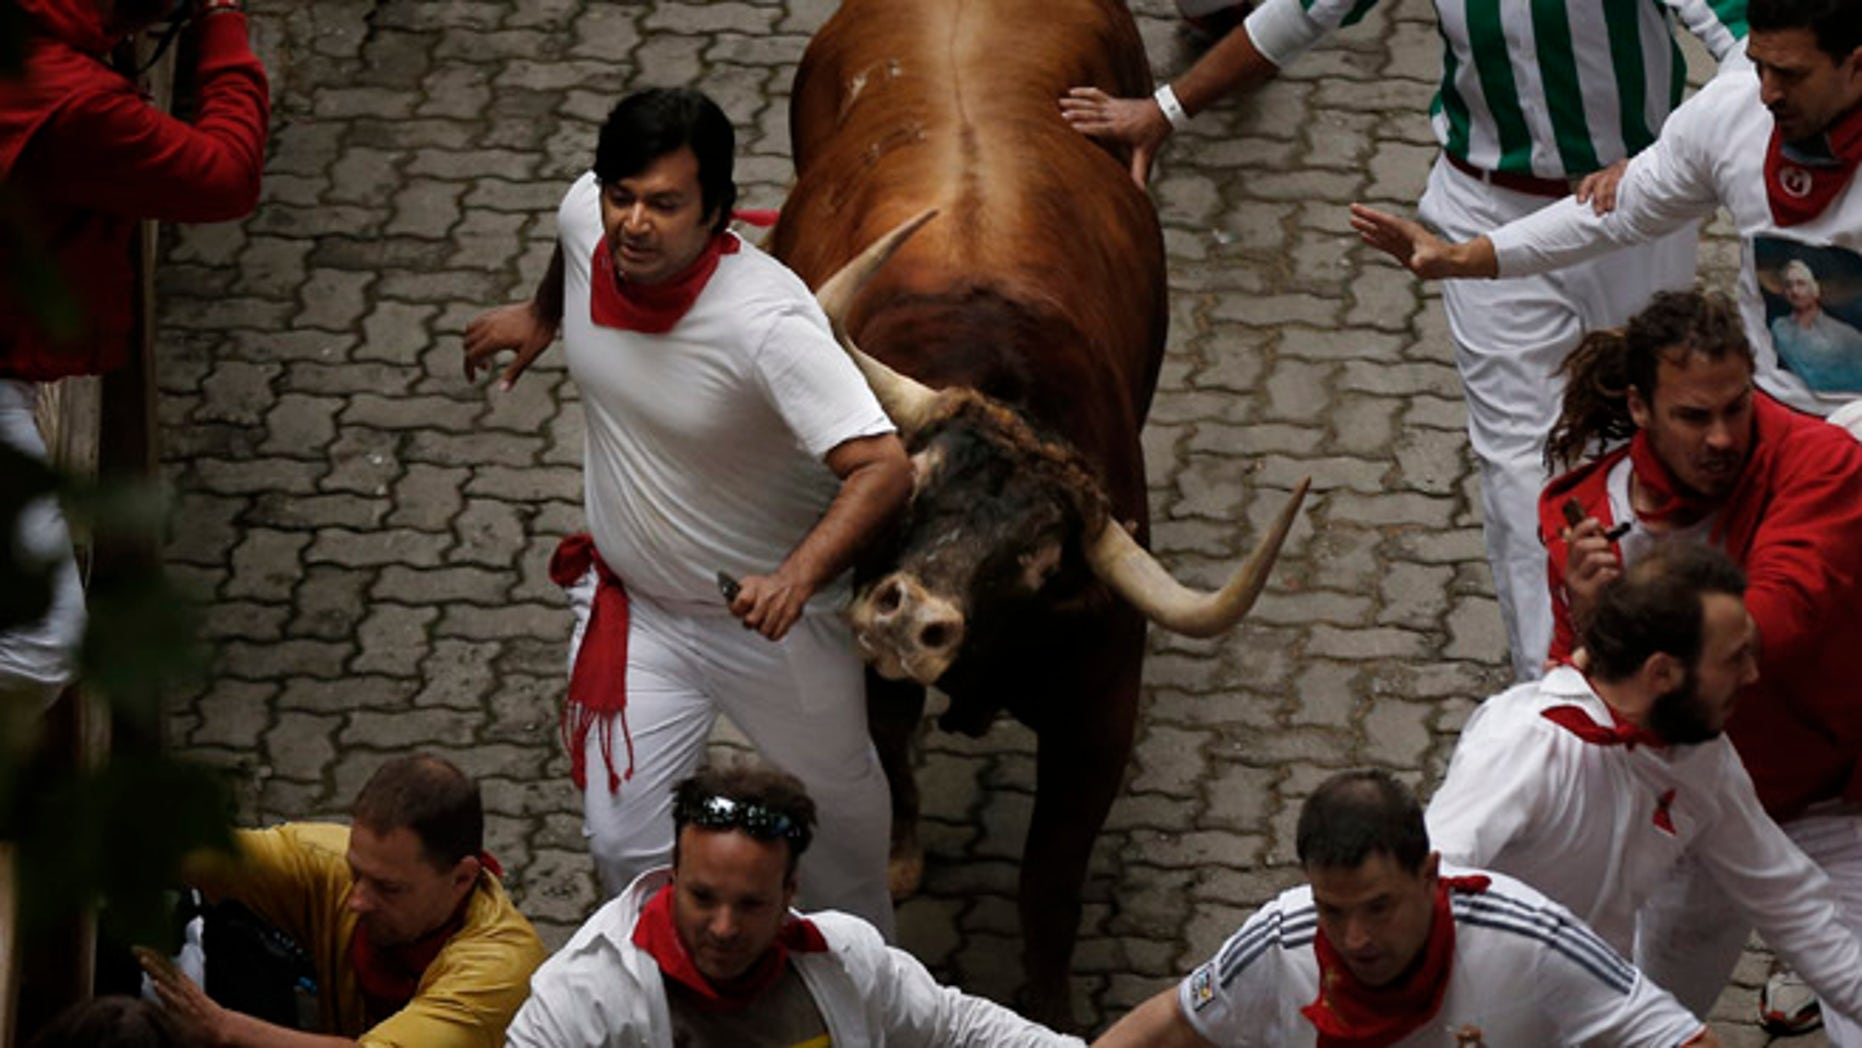 July 9, 2014: A Victoriano del Rio ranch fighting bull tosses a reveler during the running of the bulls of the San Fermin festival, in Pamplona, Spain.